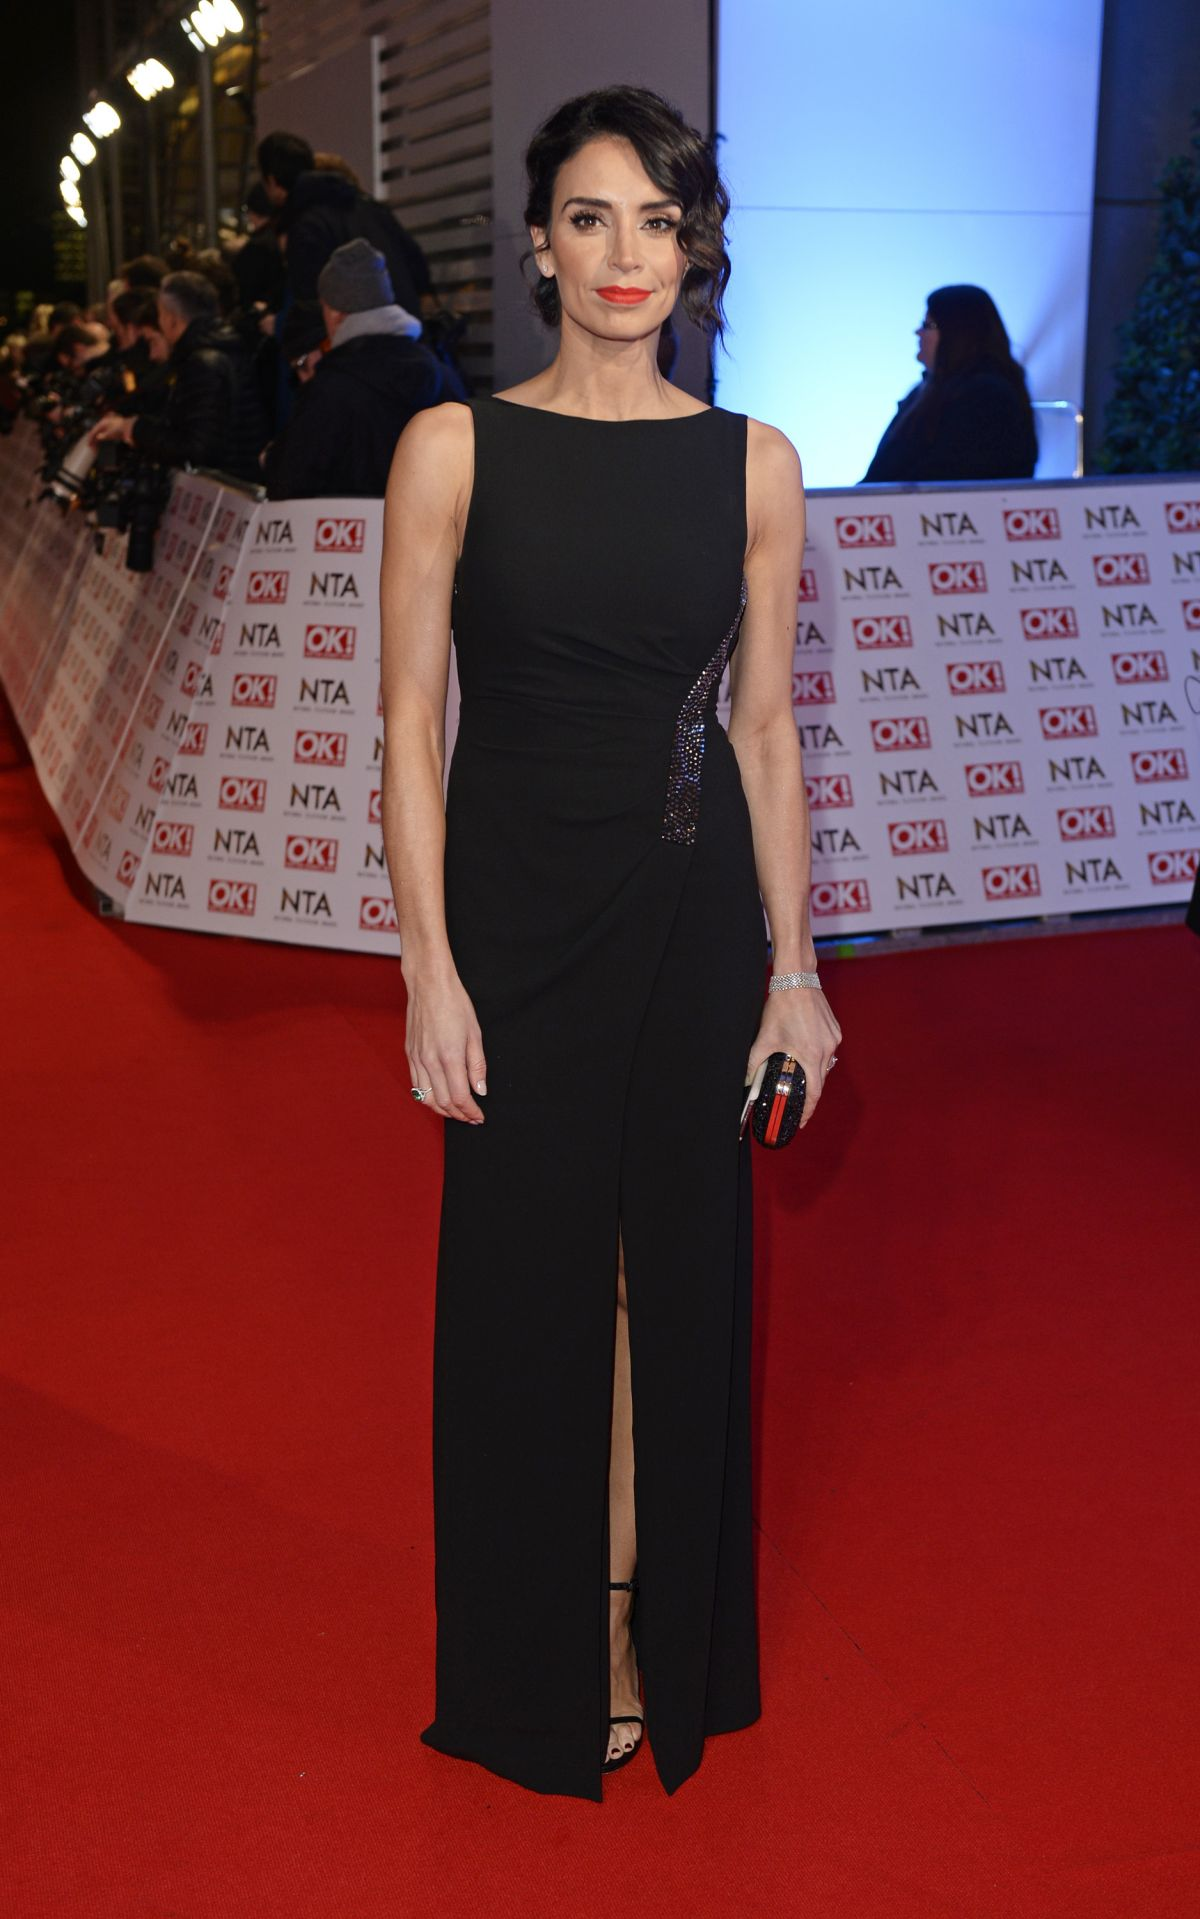 CHRISTINE BLEAKLEY at 2015 National Television Awards in London